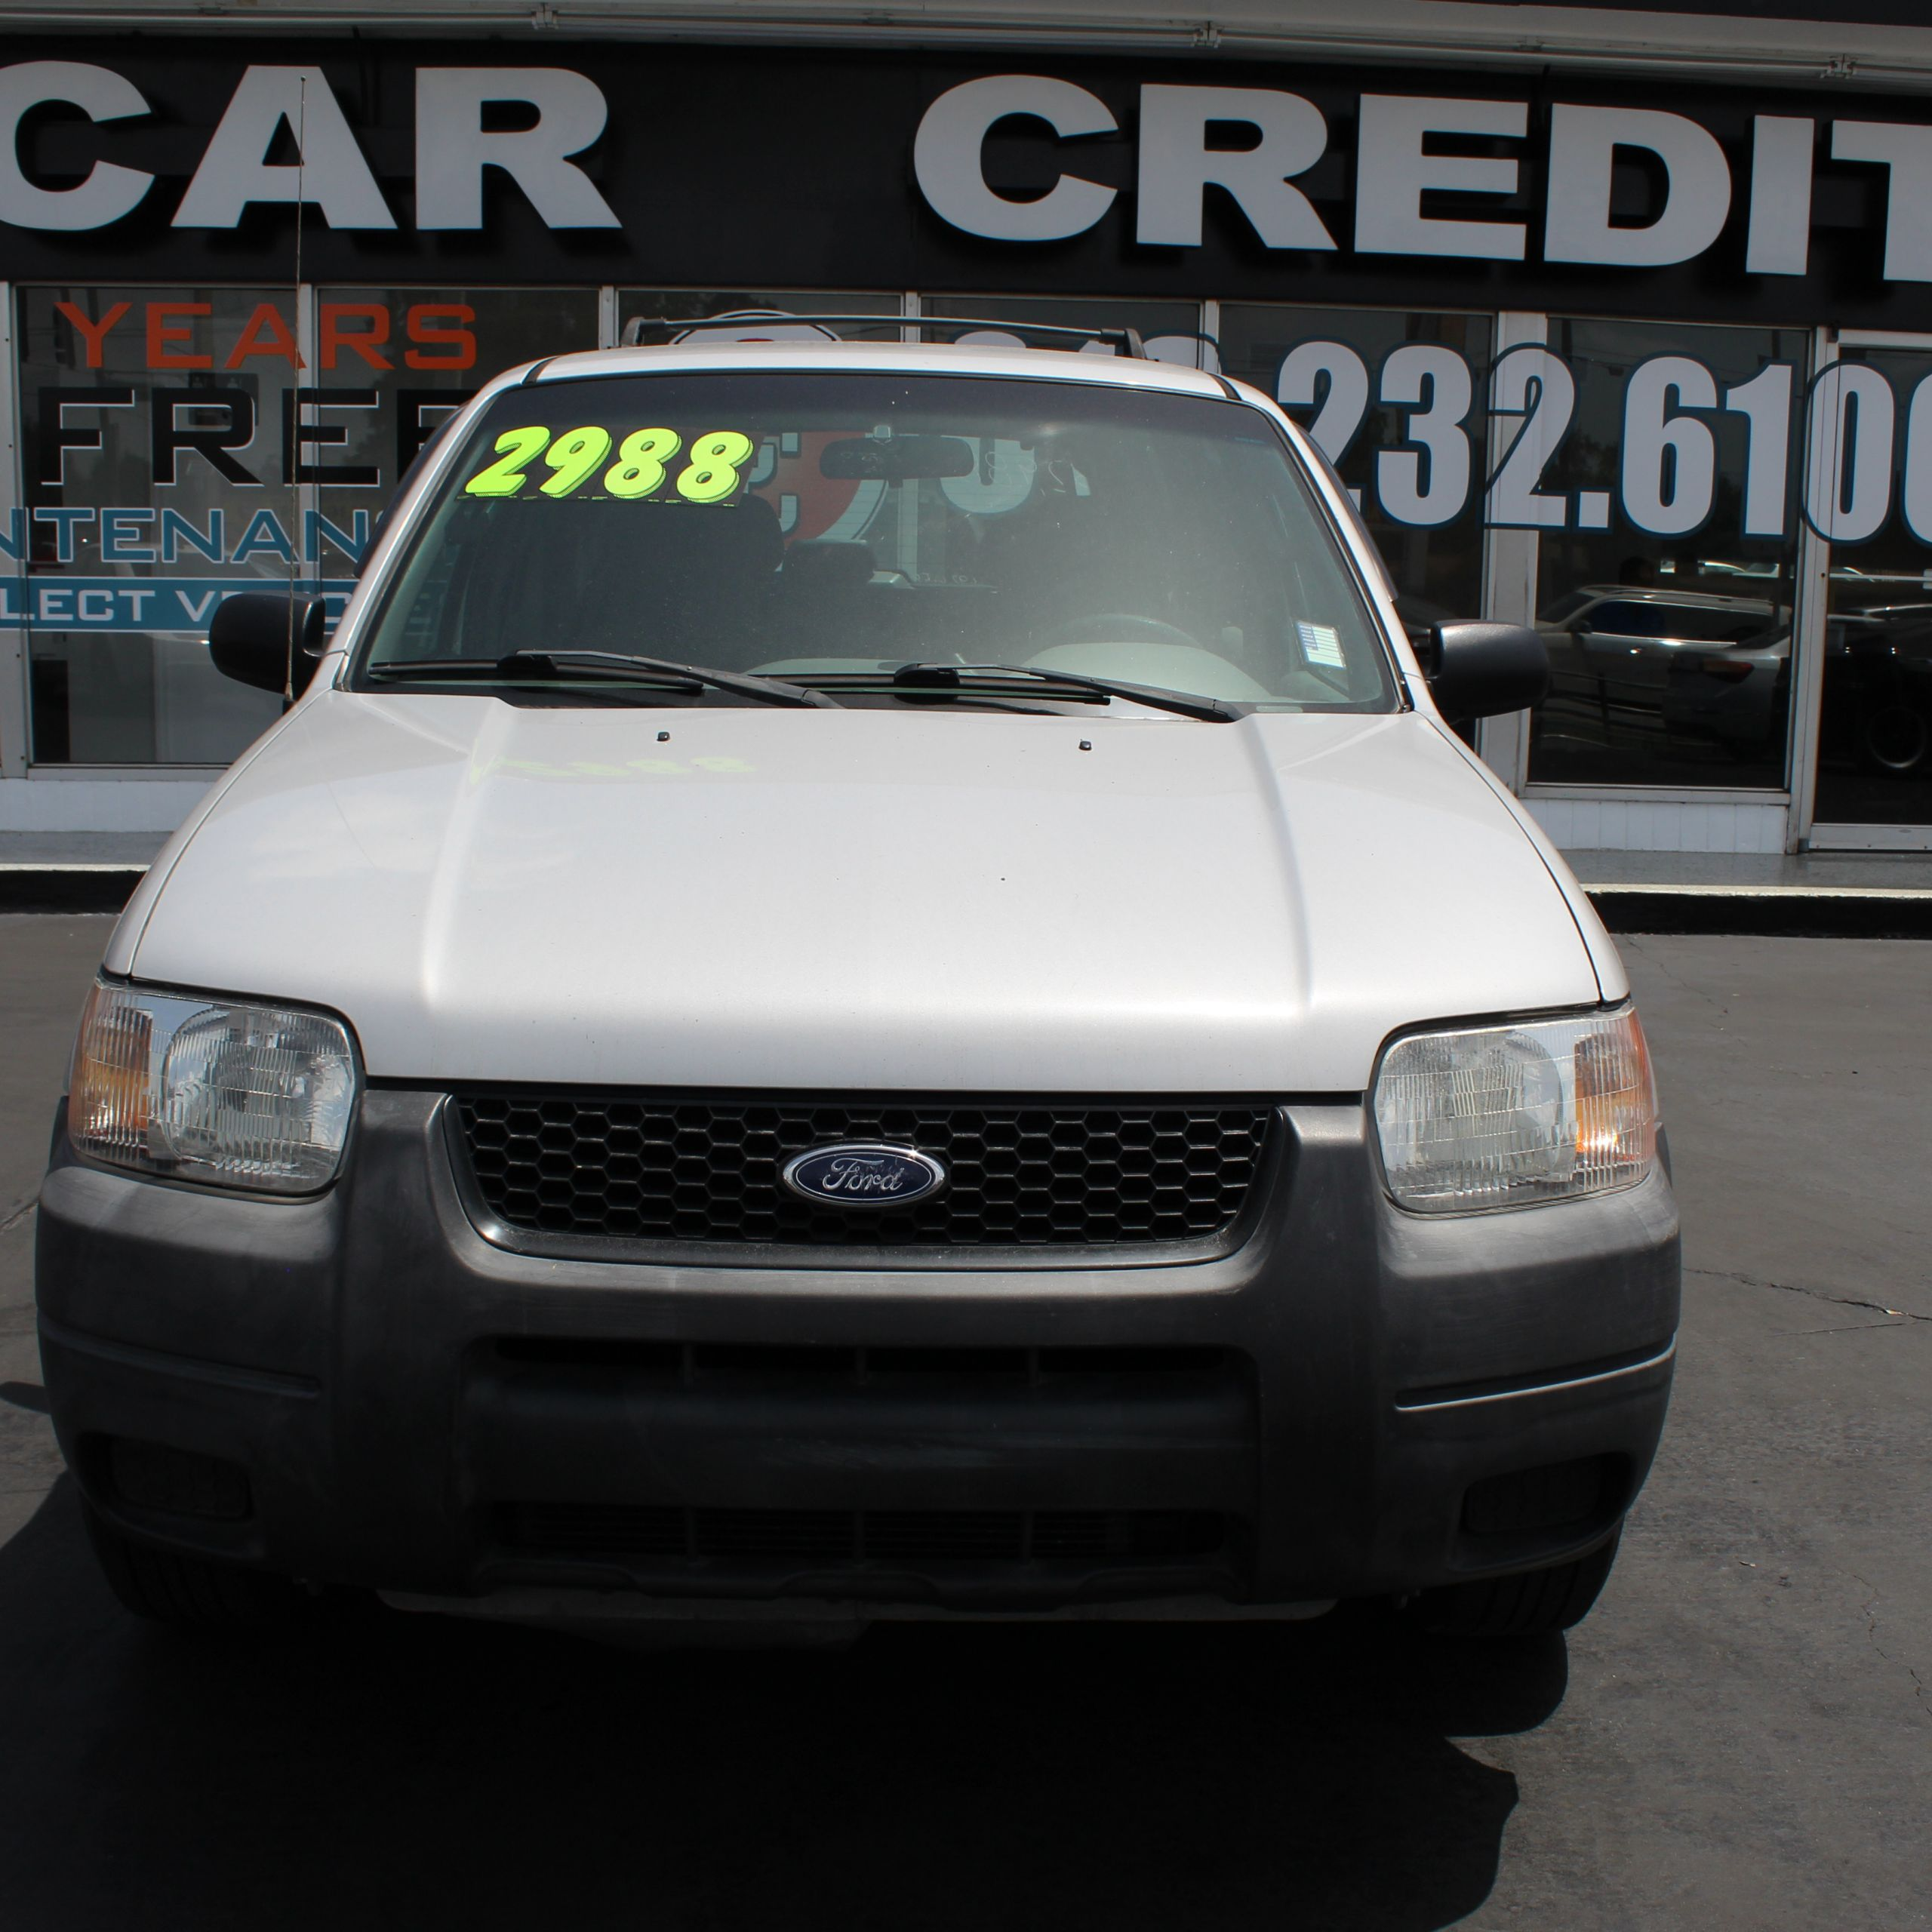 Ford Escape Wagon Lovely Pre Owned 2002 ford Escape Xls Choice Front Wheel Drive Wagon 4 Dr